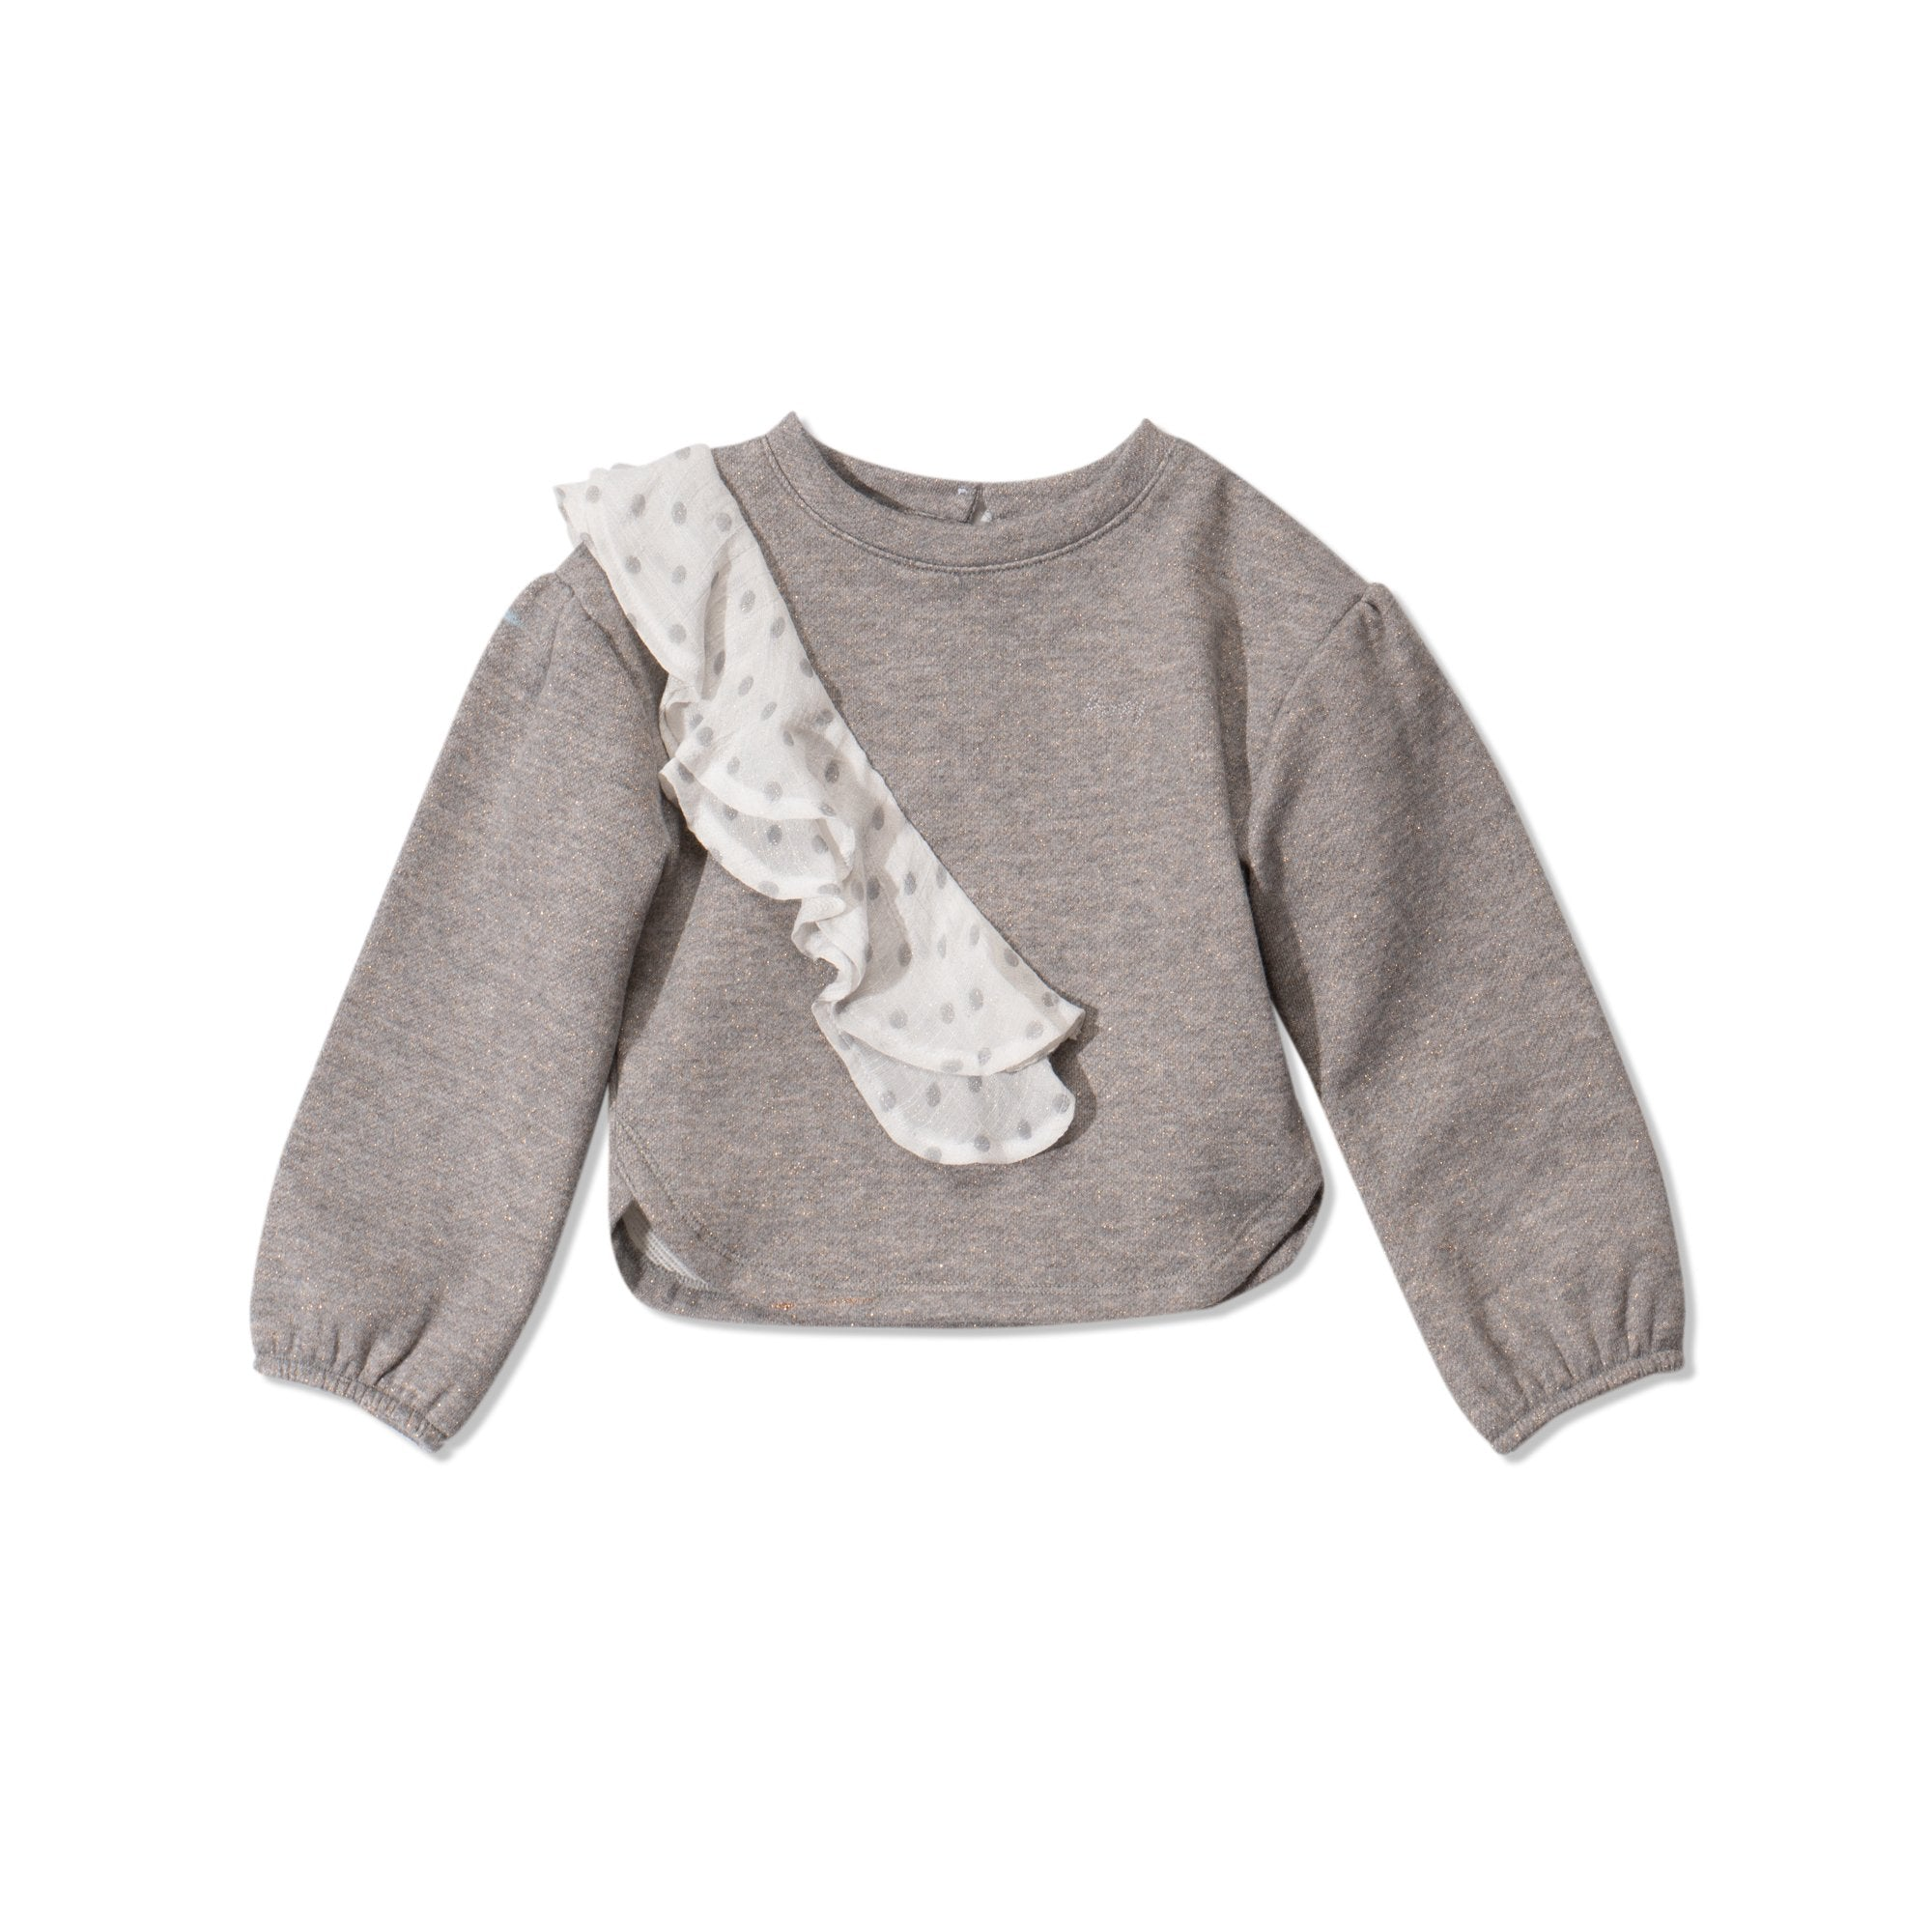 [Raya]Poney Girls Long Sleeve Sweatshirt 2025